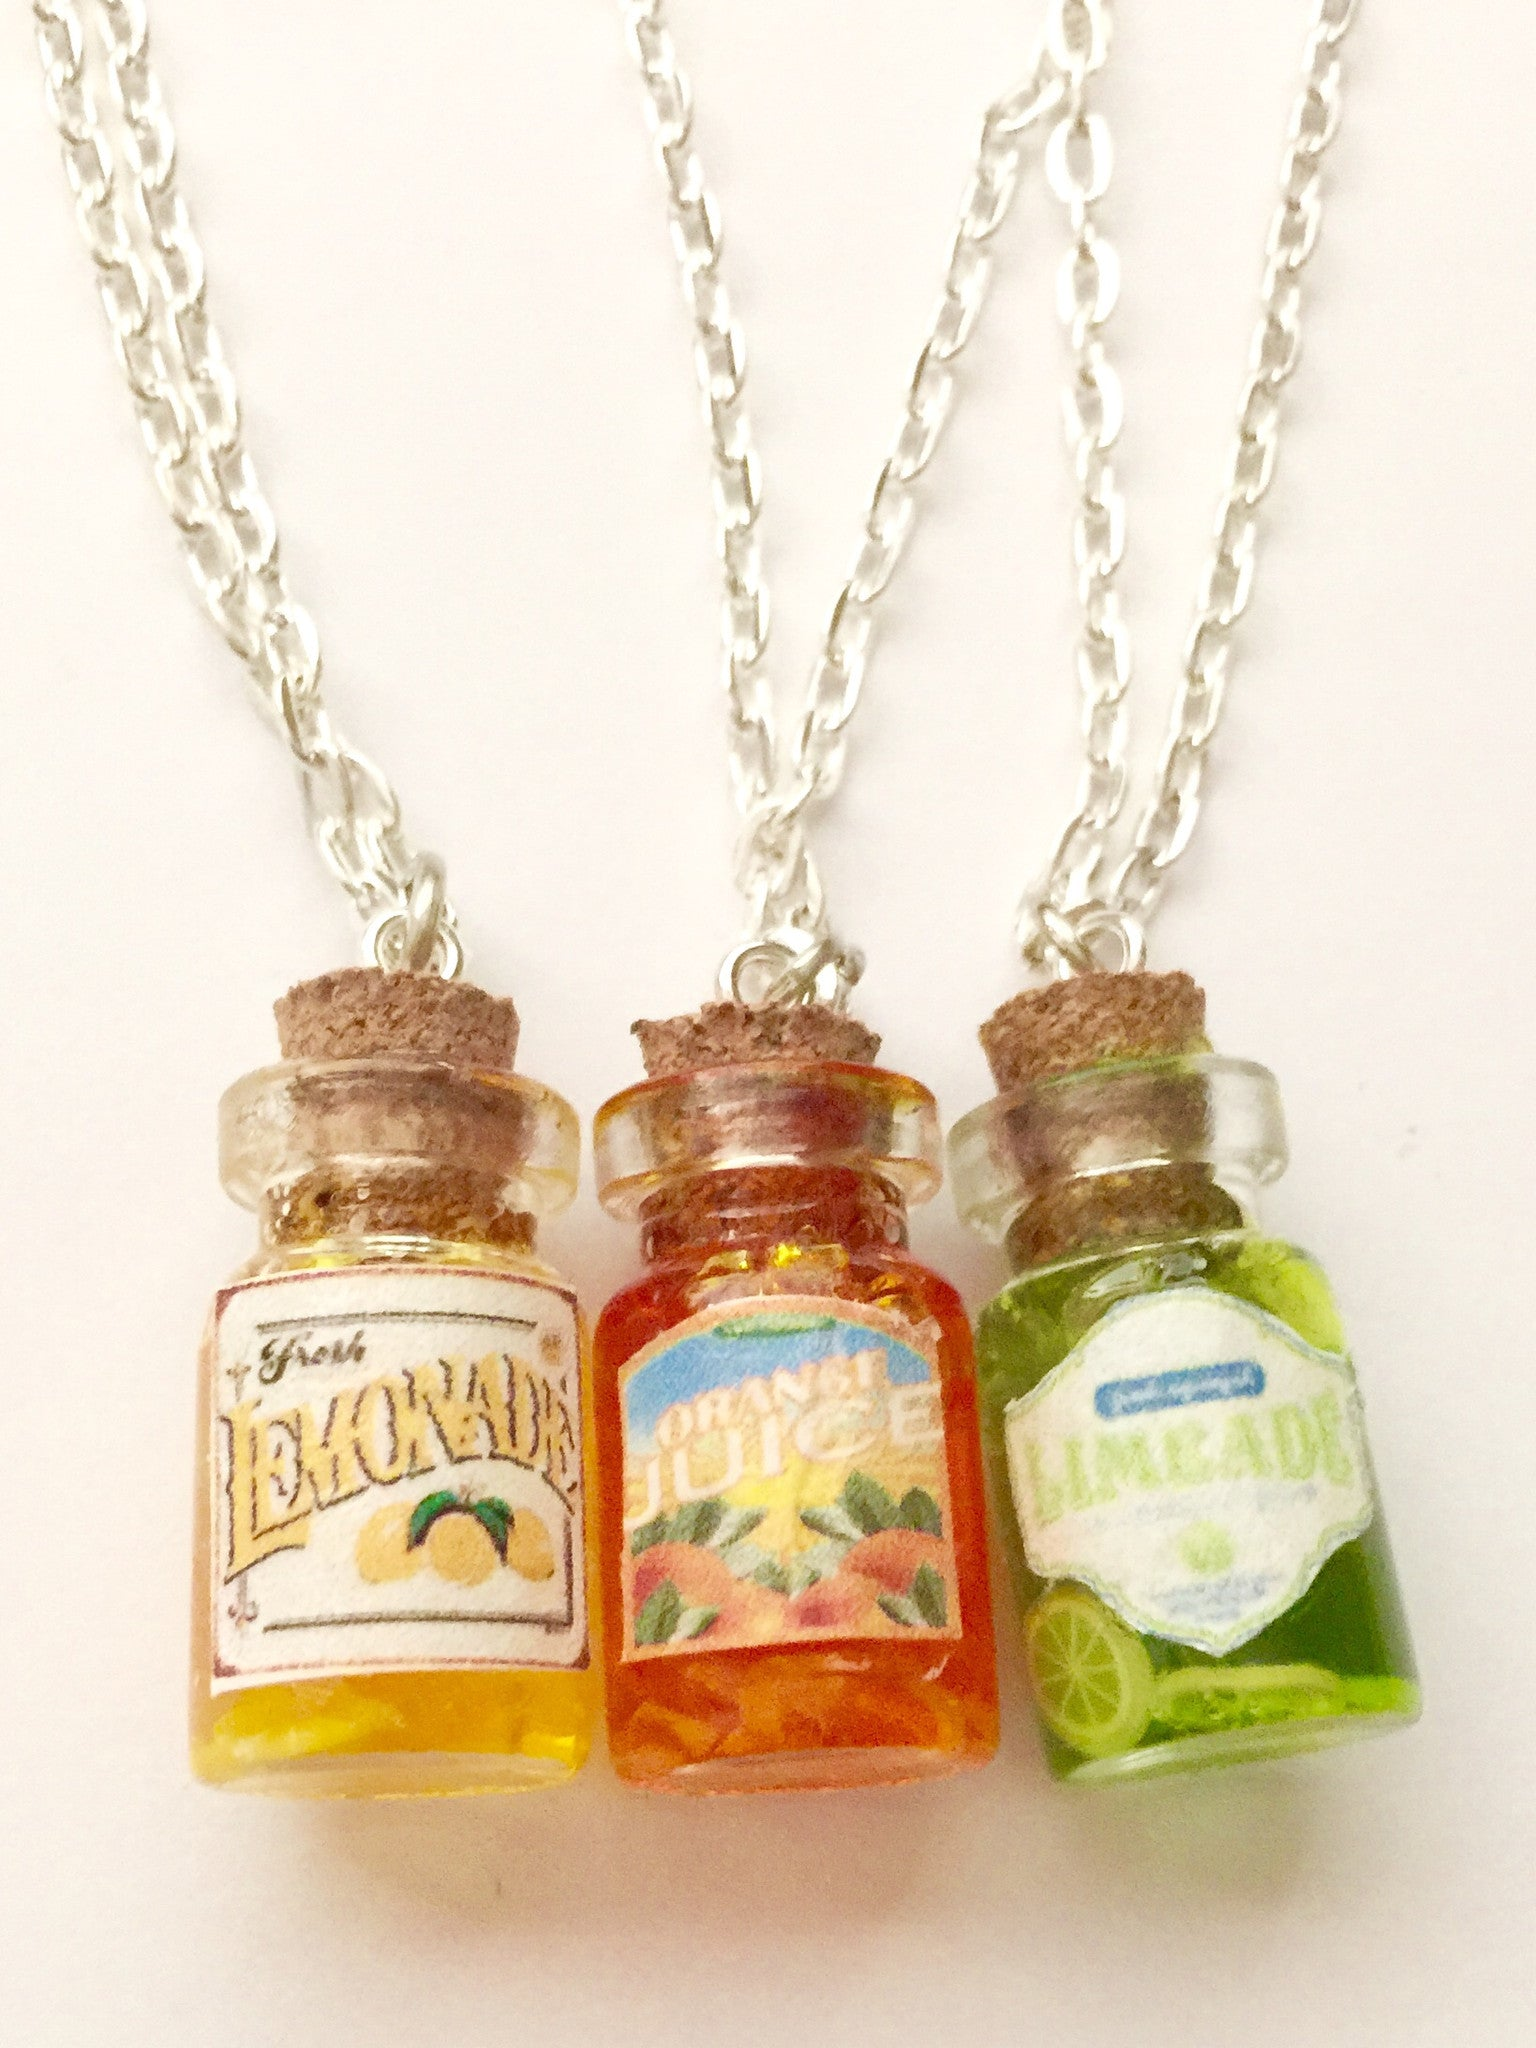 fruit juice necklace - Jillicious charms and accessories - 2